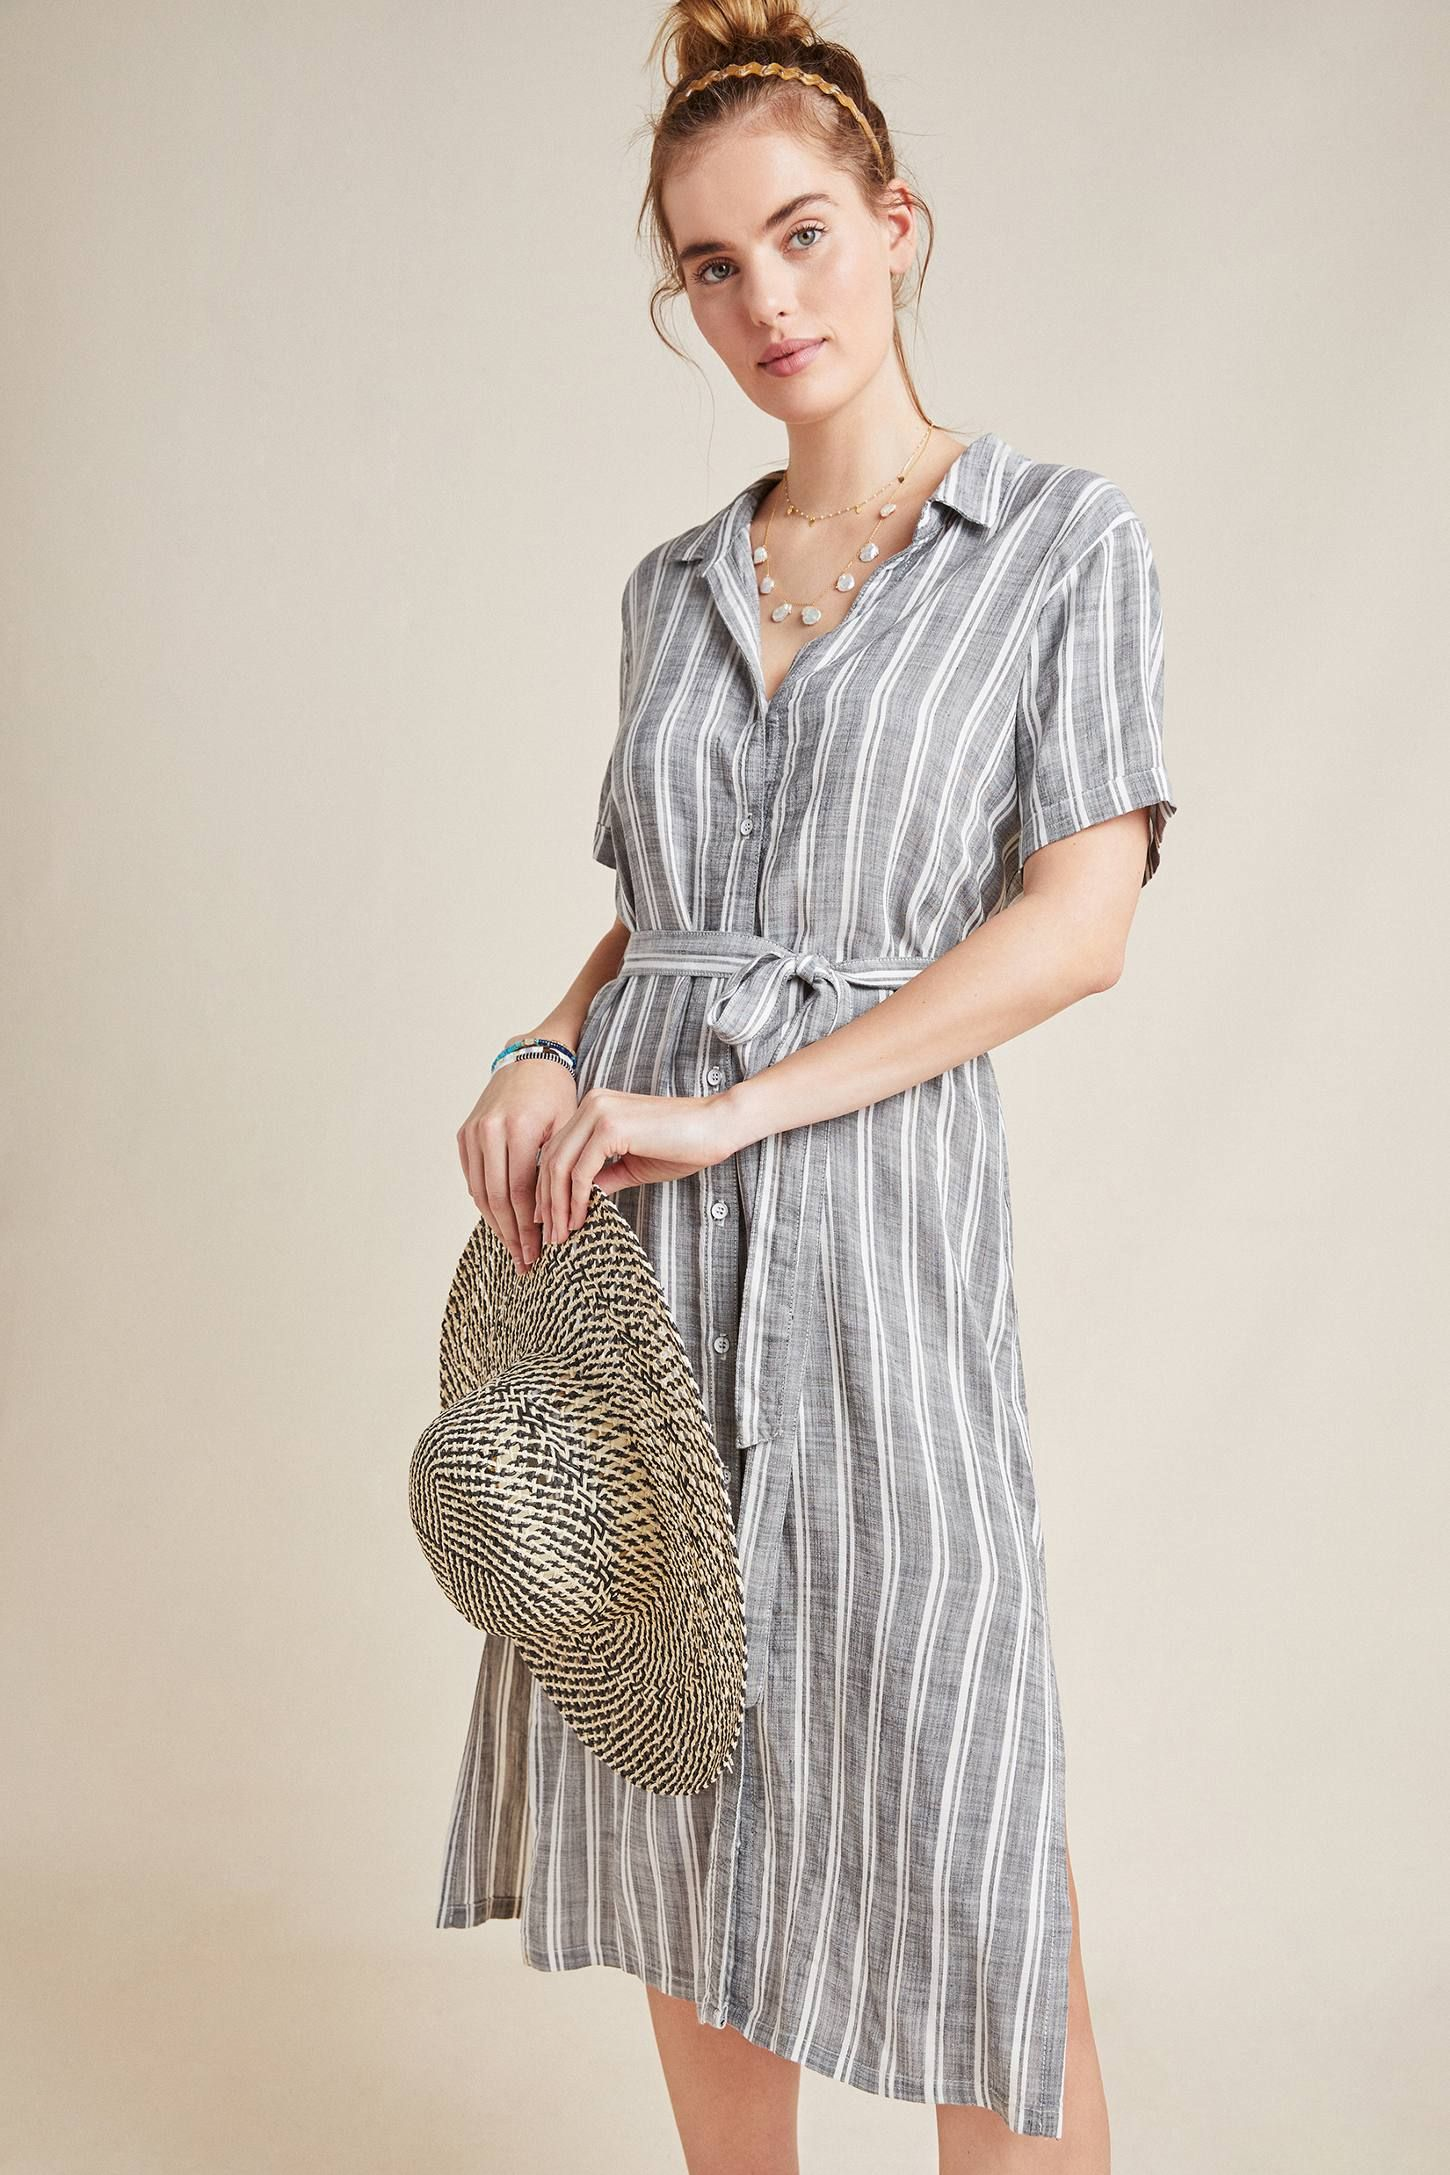 857e1f89bef Cloth & Stone July Striped Shirtdress in 2019 | clothing time ...